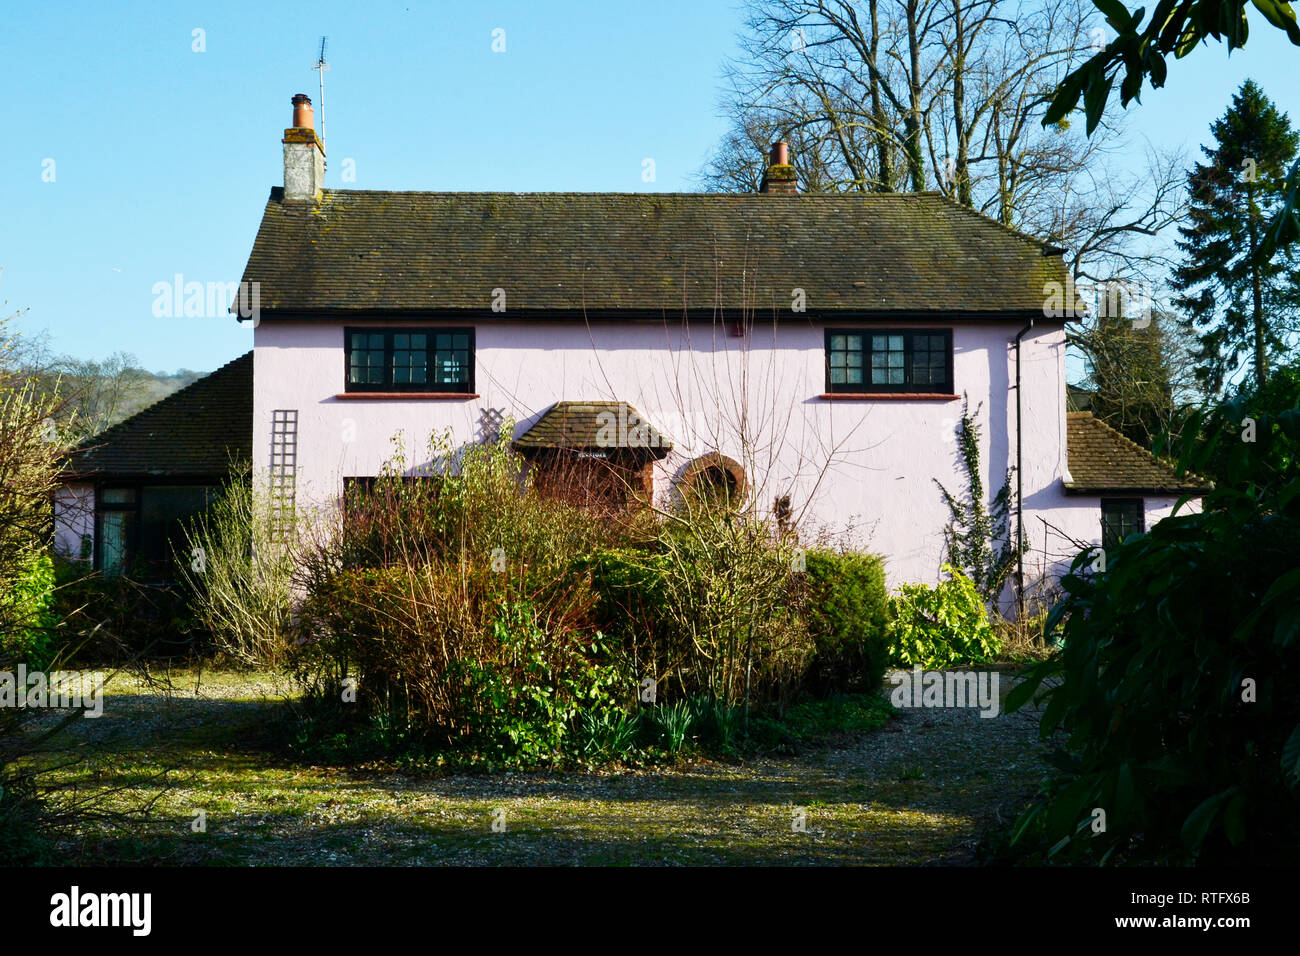 Pink House on the Aylesbury Road, Princes Risborough, Buckinghamshire, UK - Stock Image